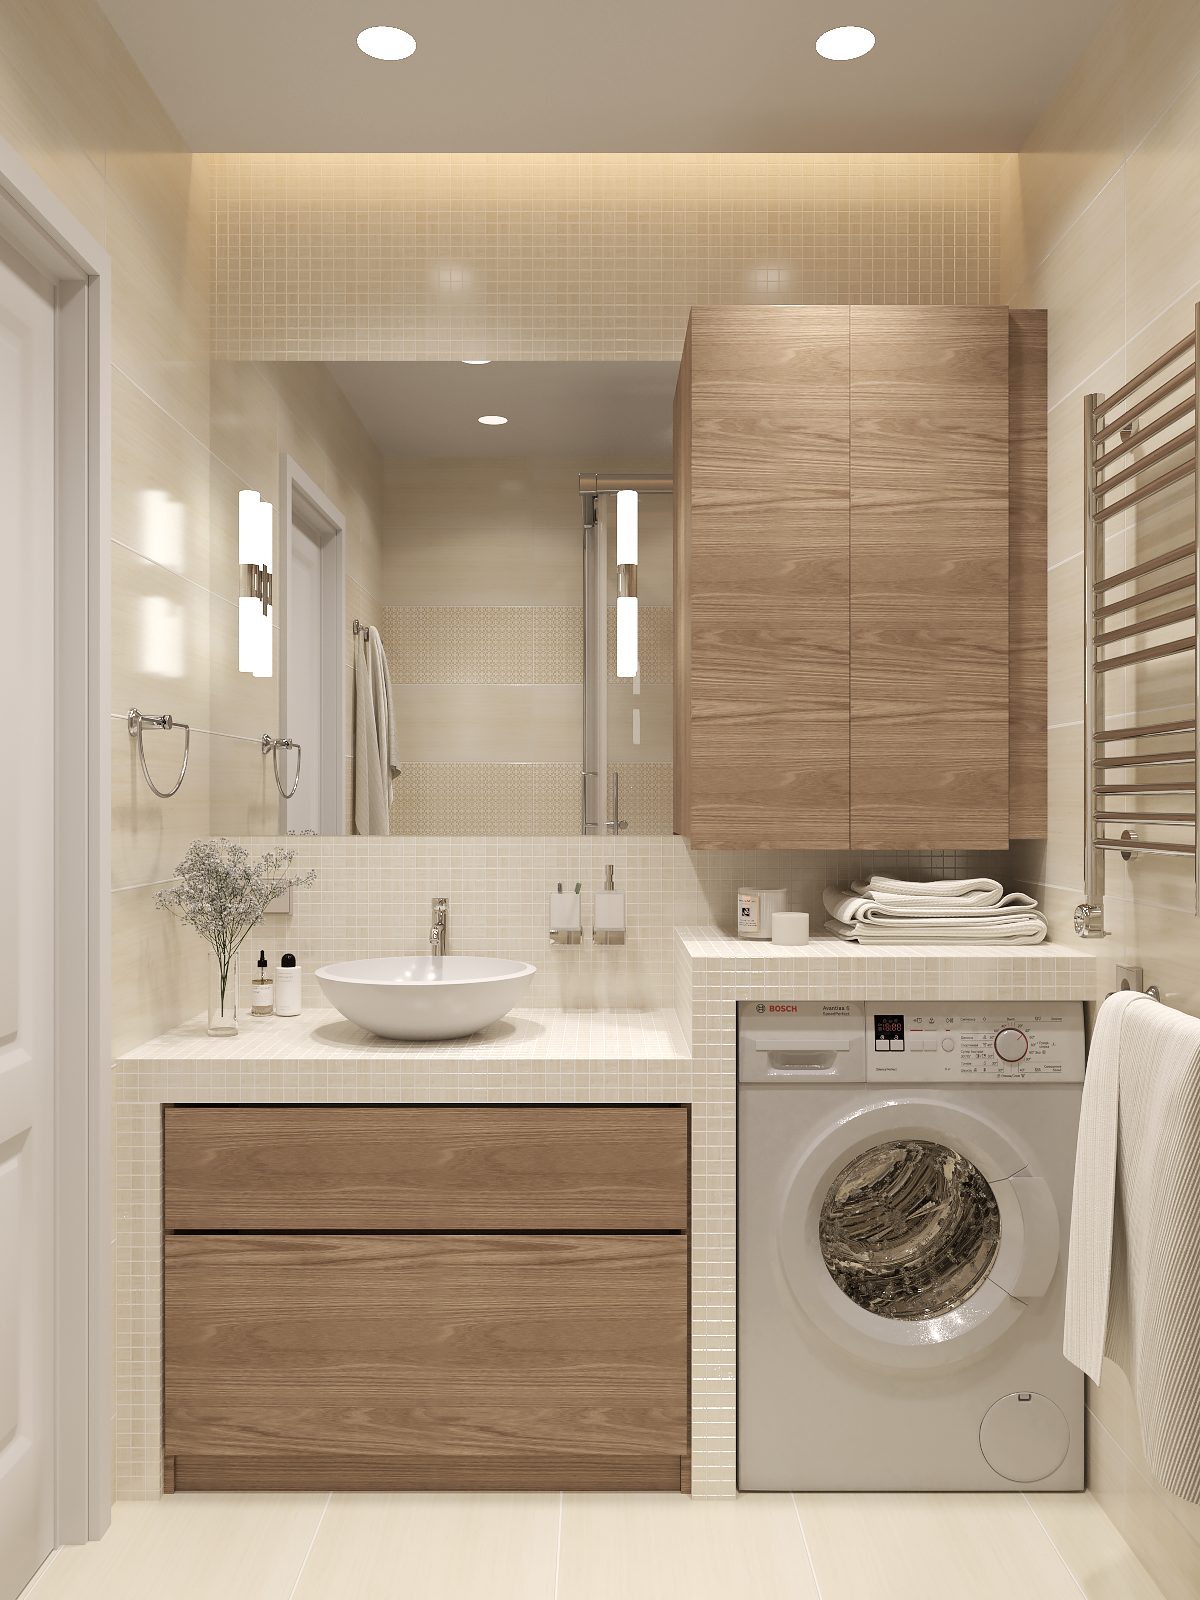 Very neat bathroom layout with the washing machine for Amenagement petite salle de bain avec machine a laver